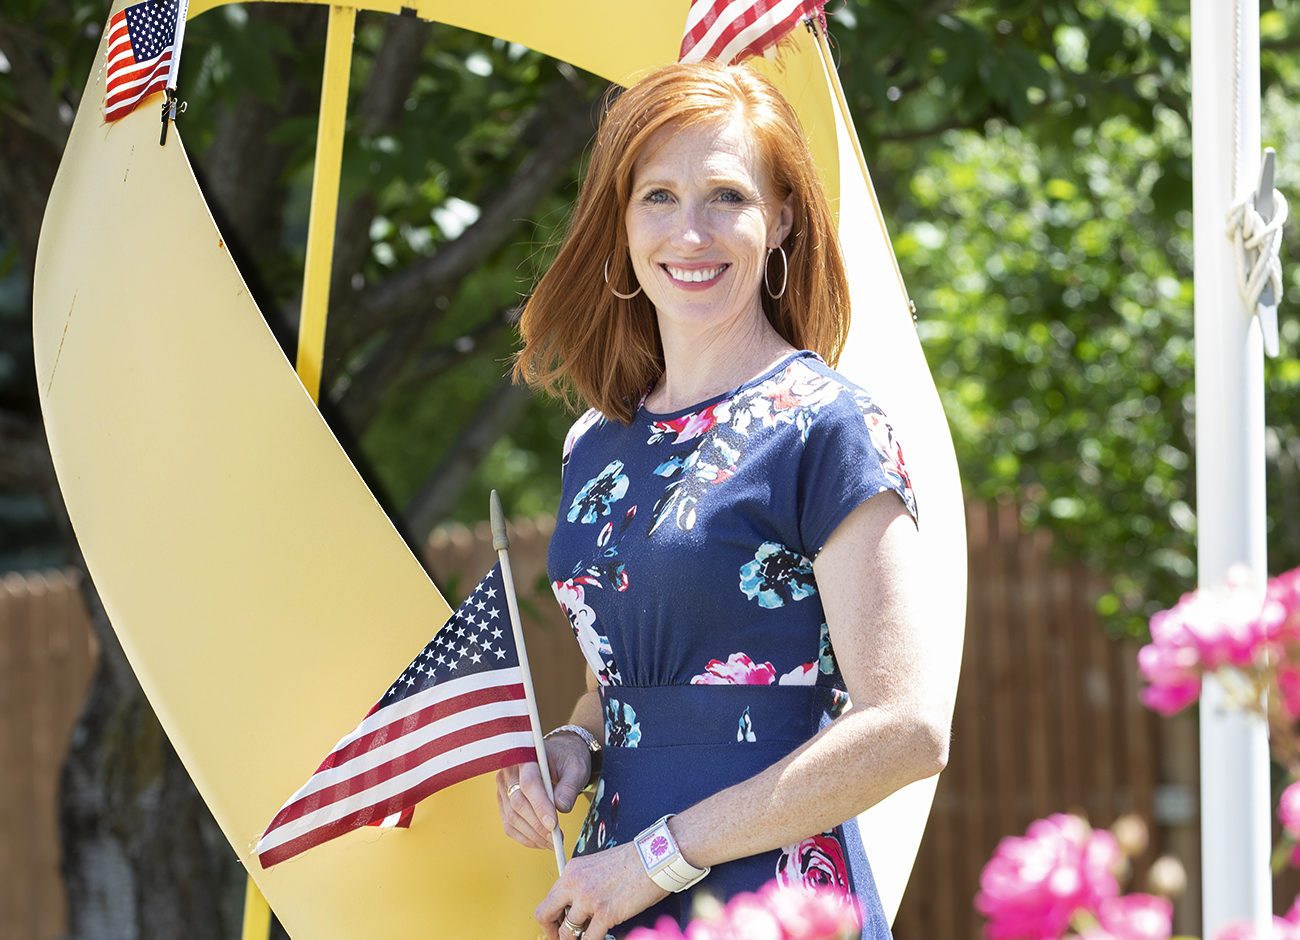 Jennie Taylor stands in her backyard holding an American flag.